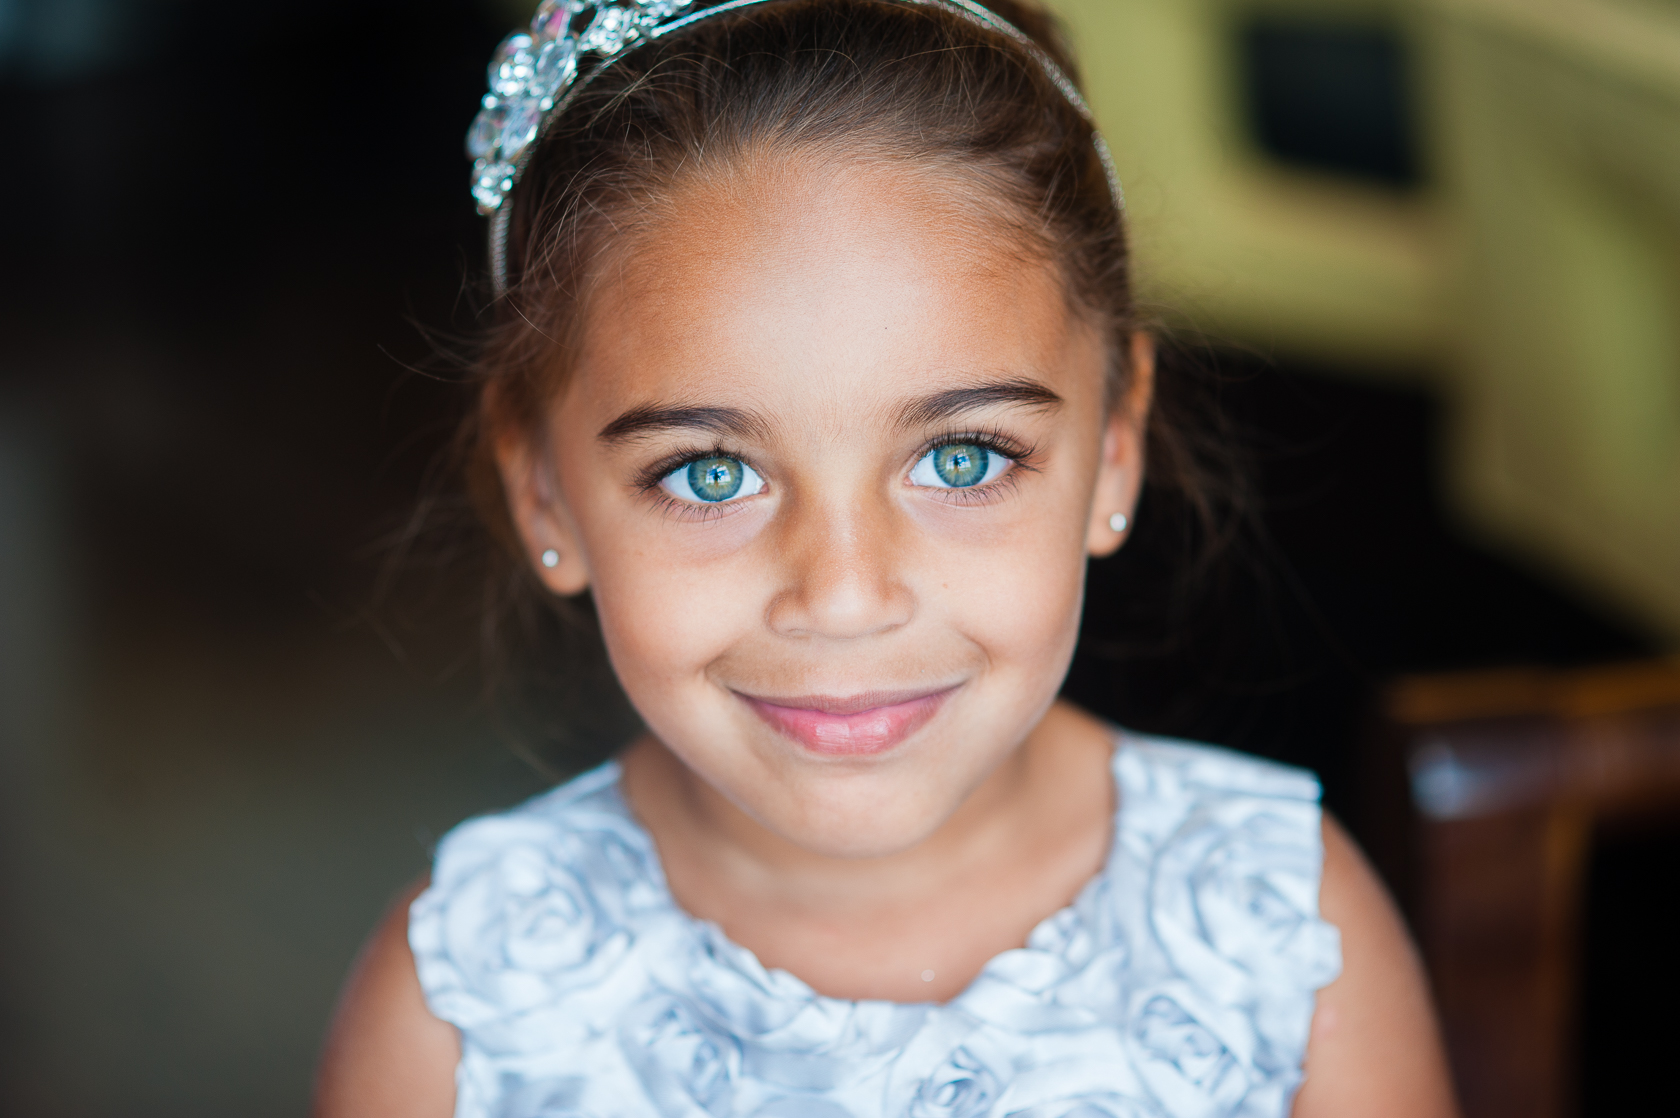 stunning flower girl with blue eyes smiling